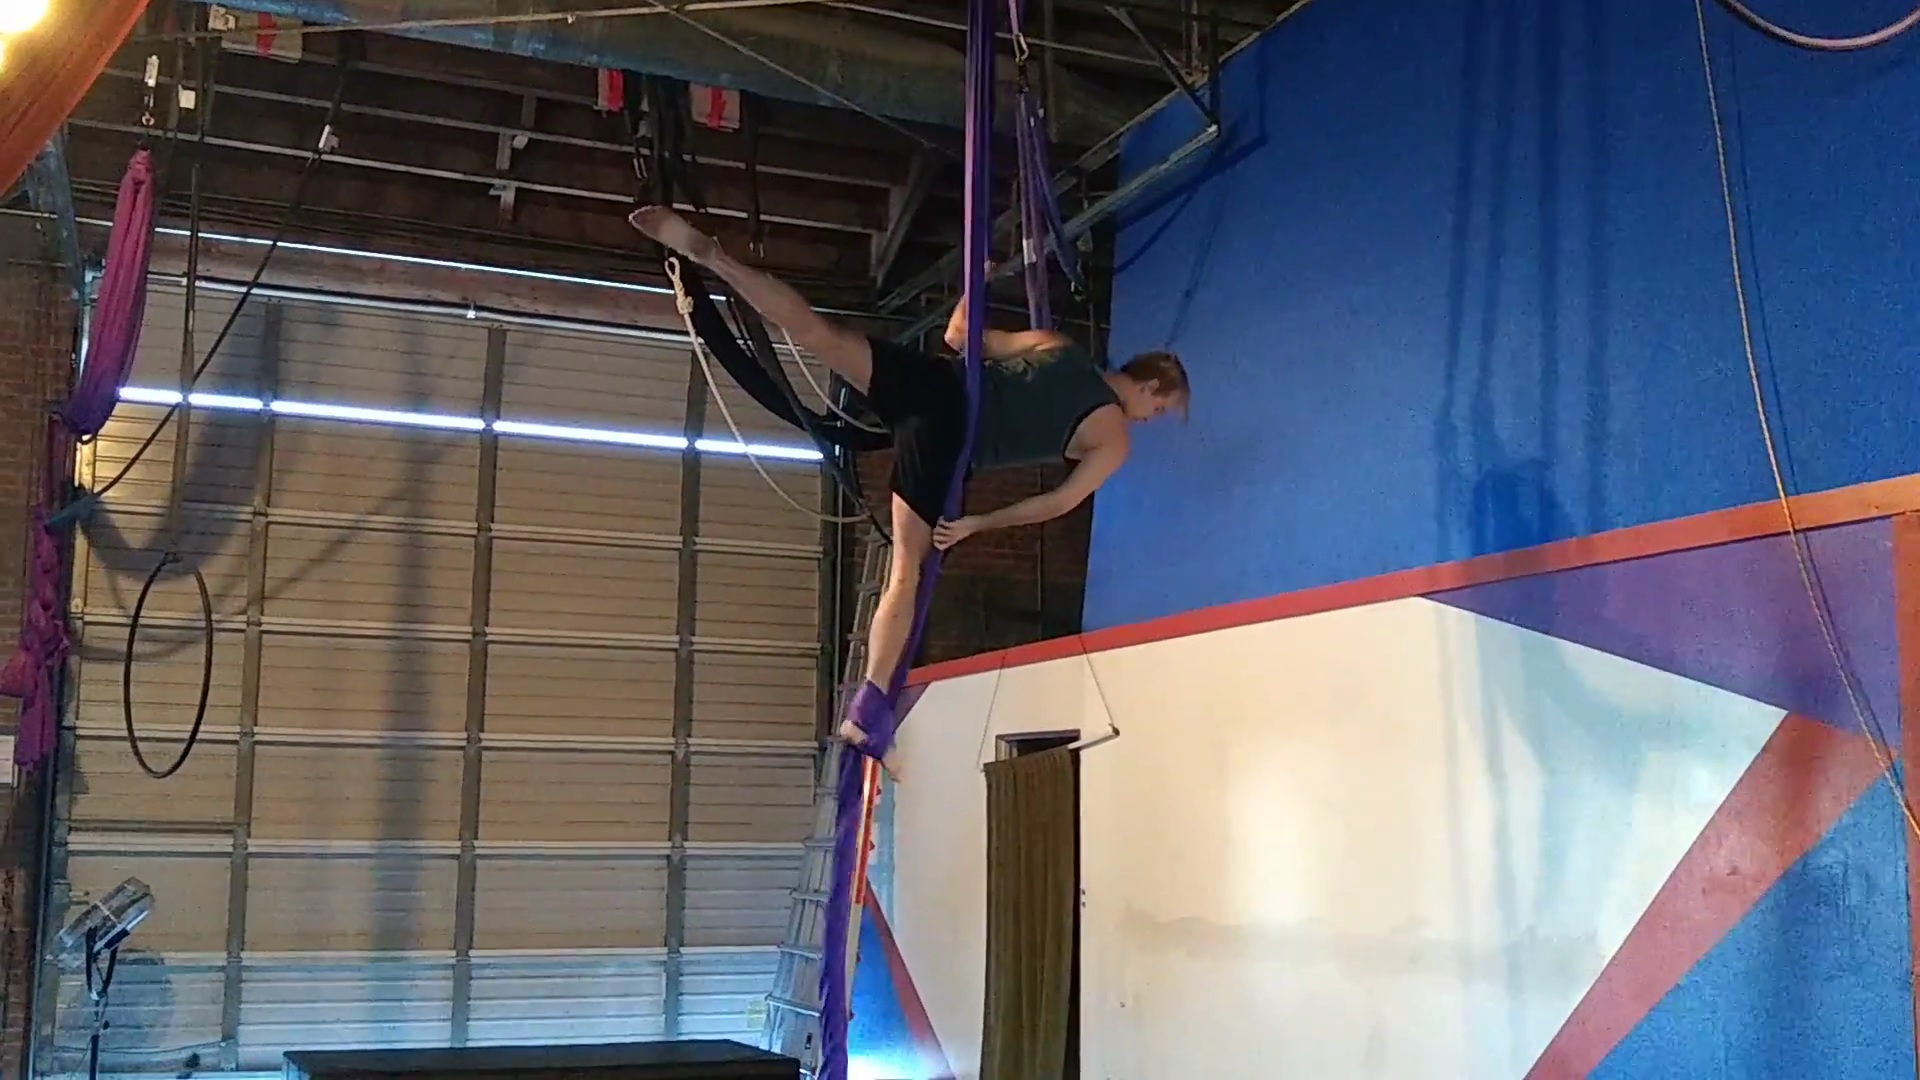 Snapshot of Brice LaGrand in an arabesque on the aerial silks.